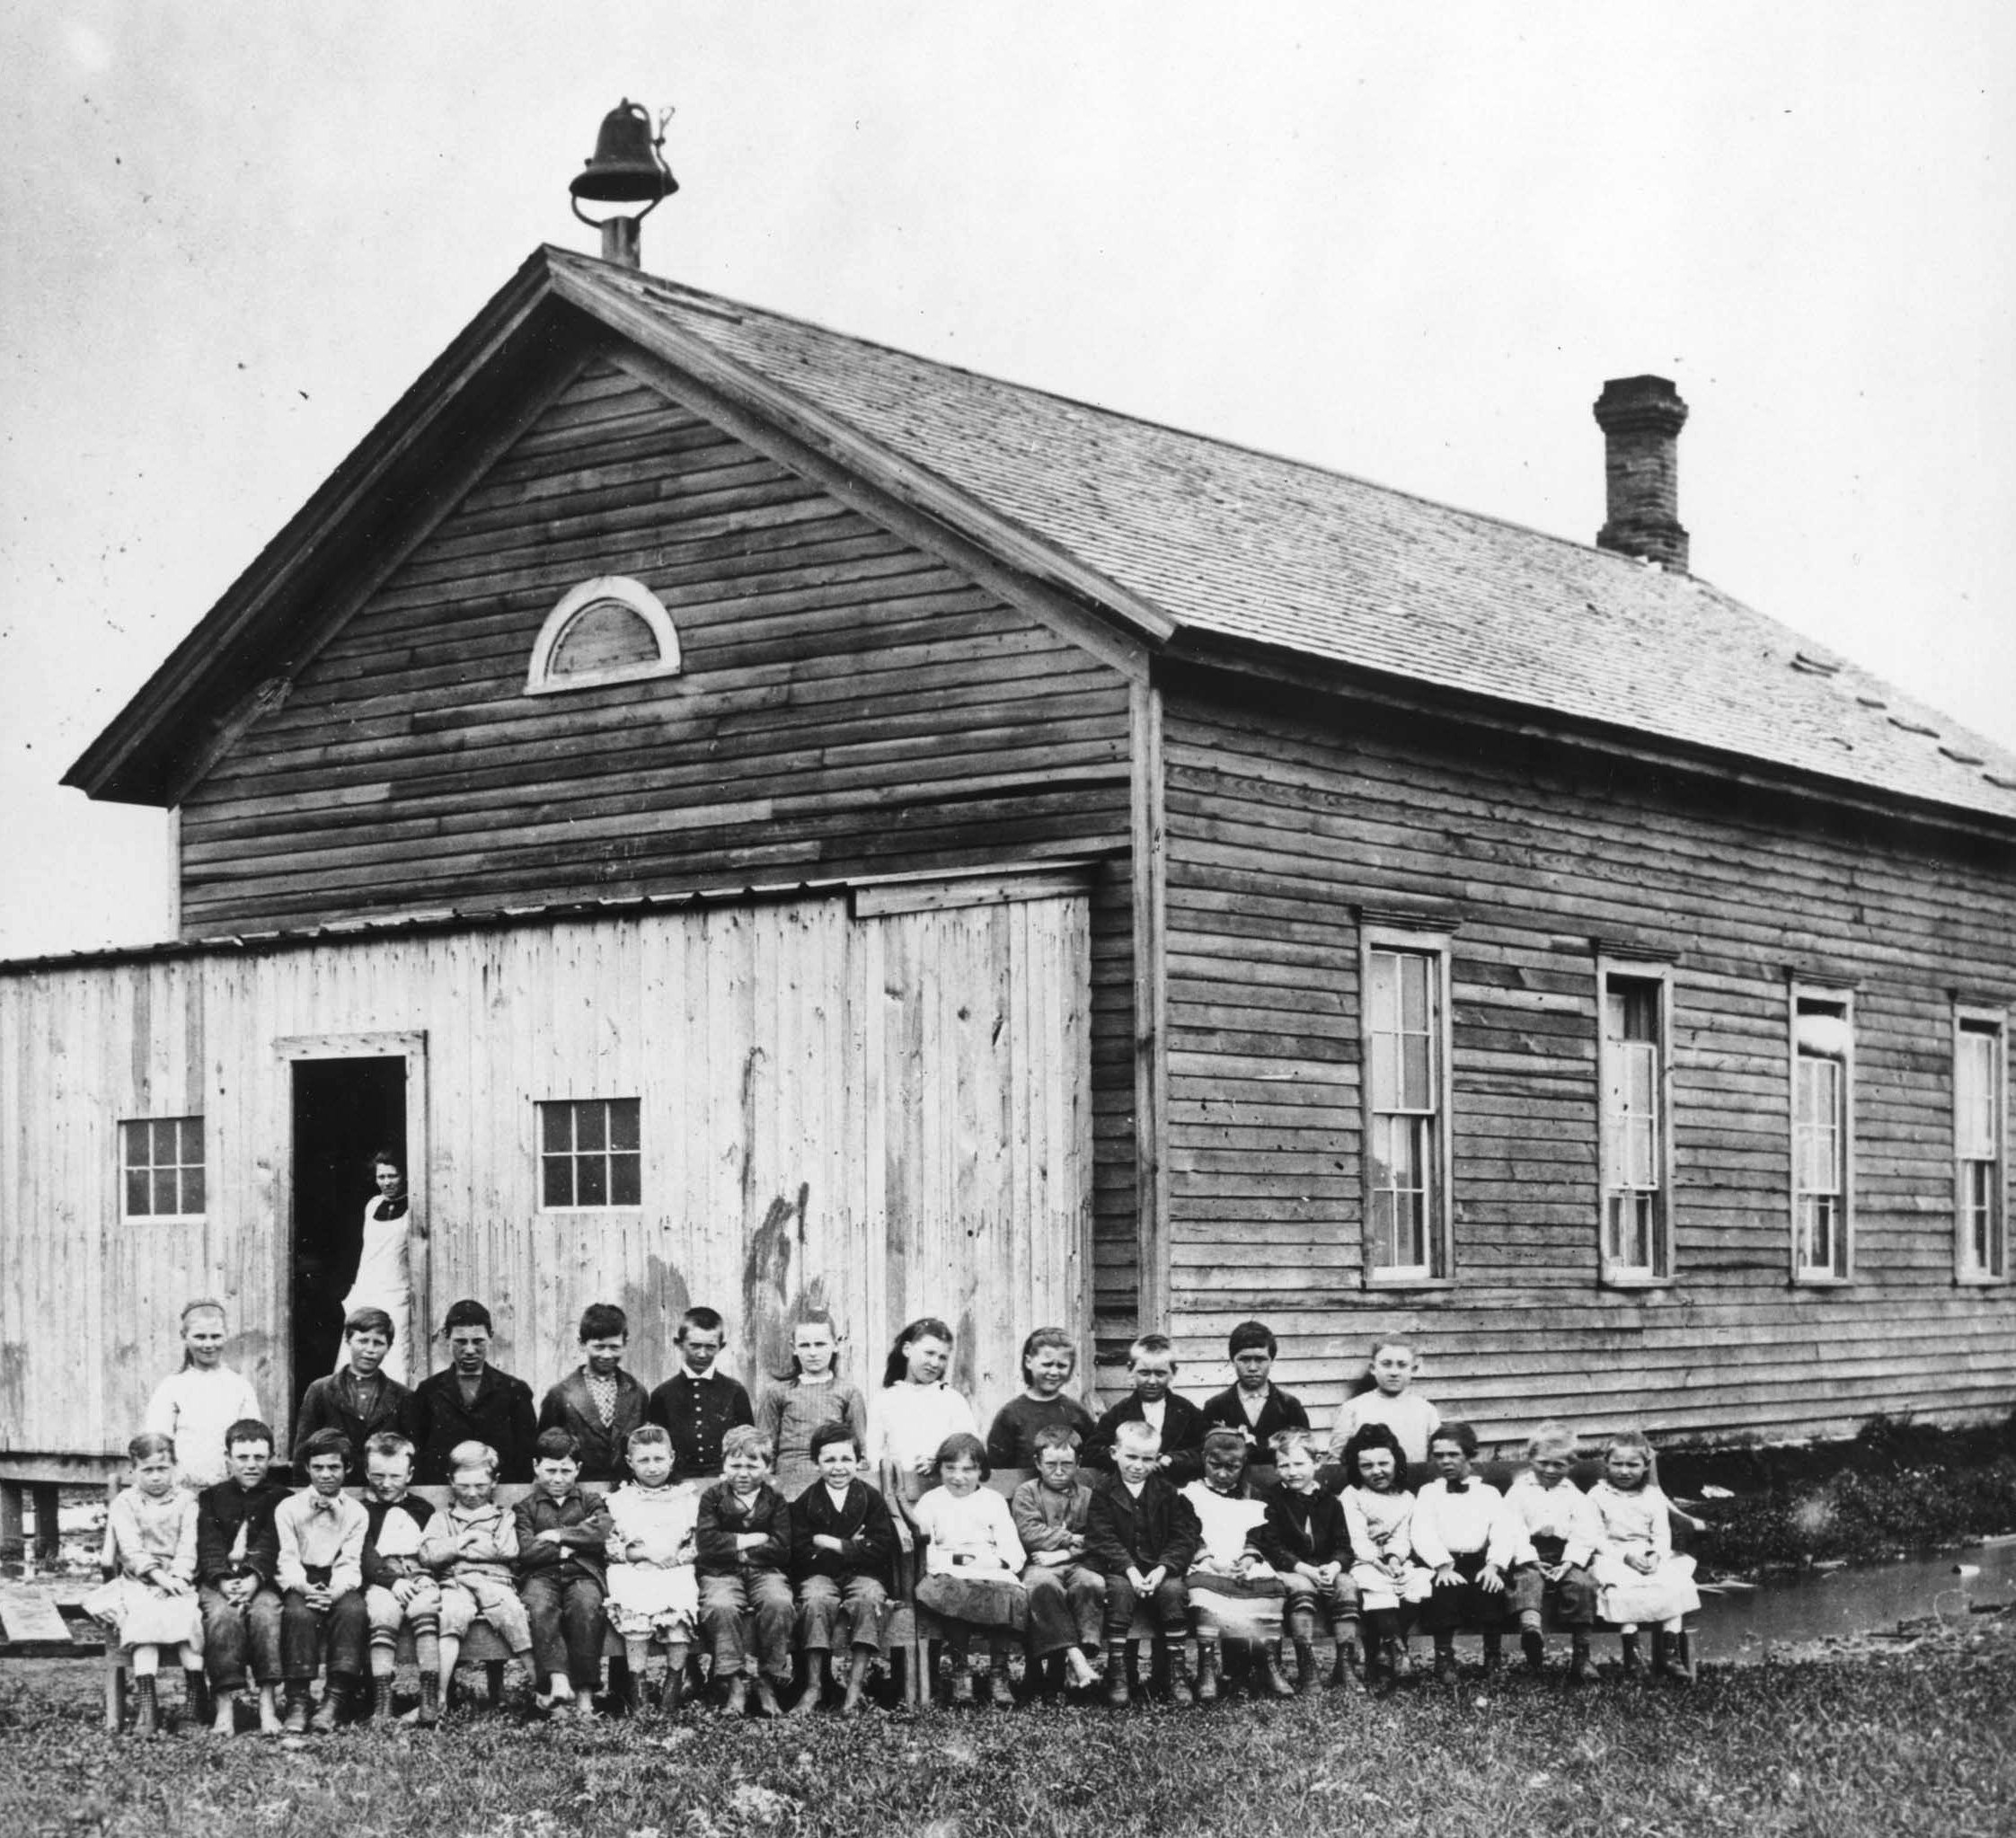 North dakota pembina county cavalier - Schoolhouse In Fargo 1878 Shsnd C0552